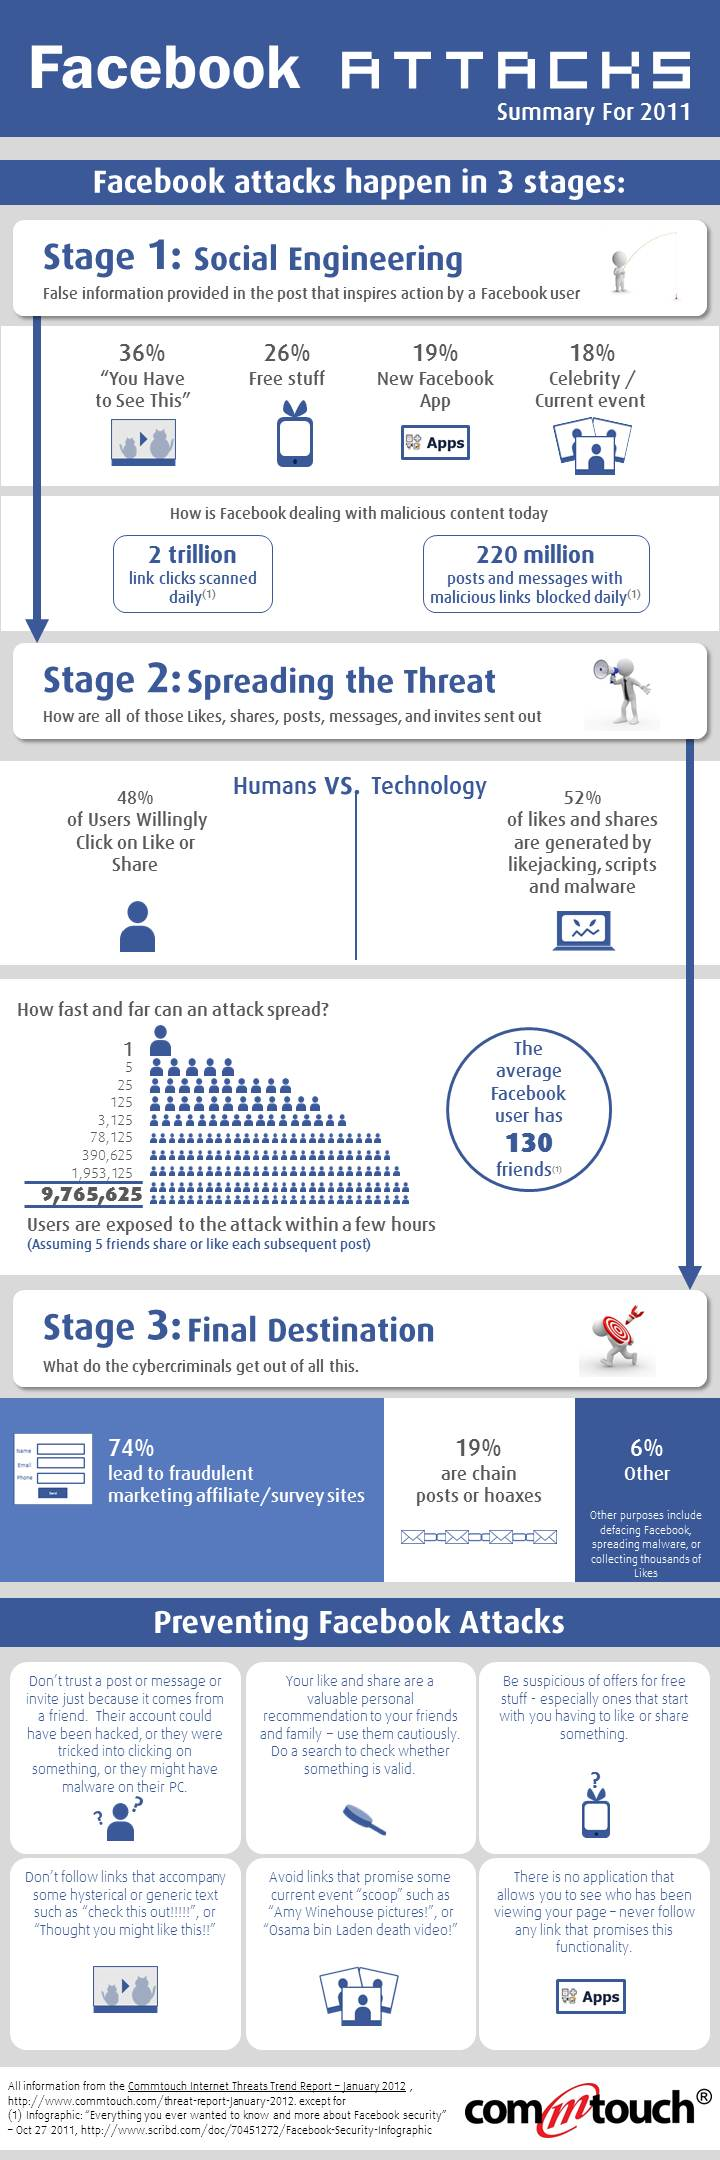 Infographic Facebook Attack Trends in 2011